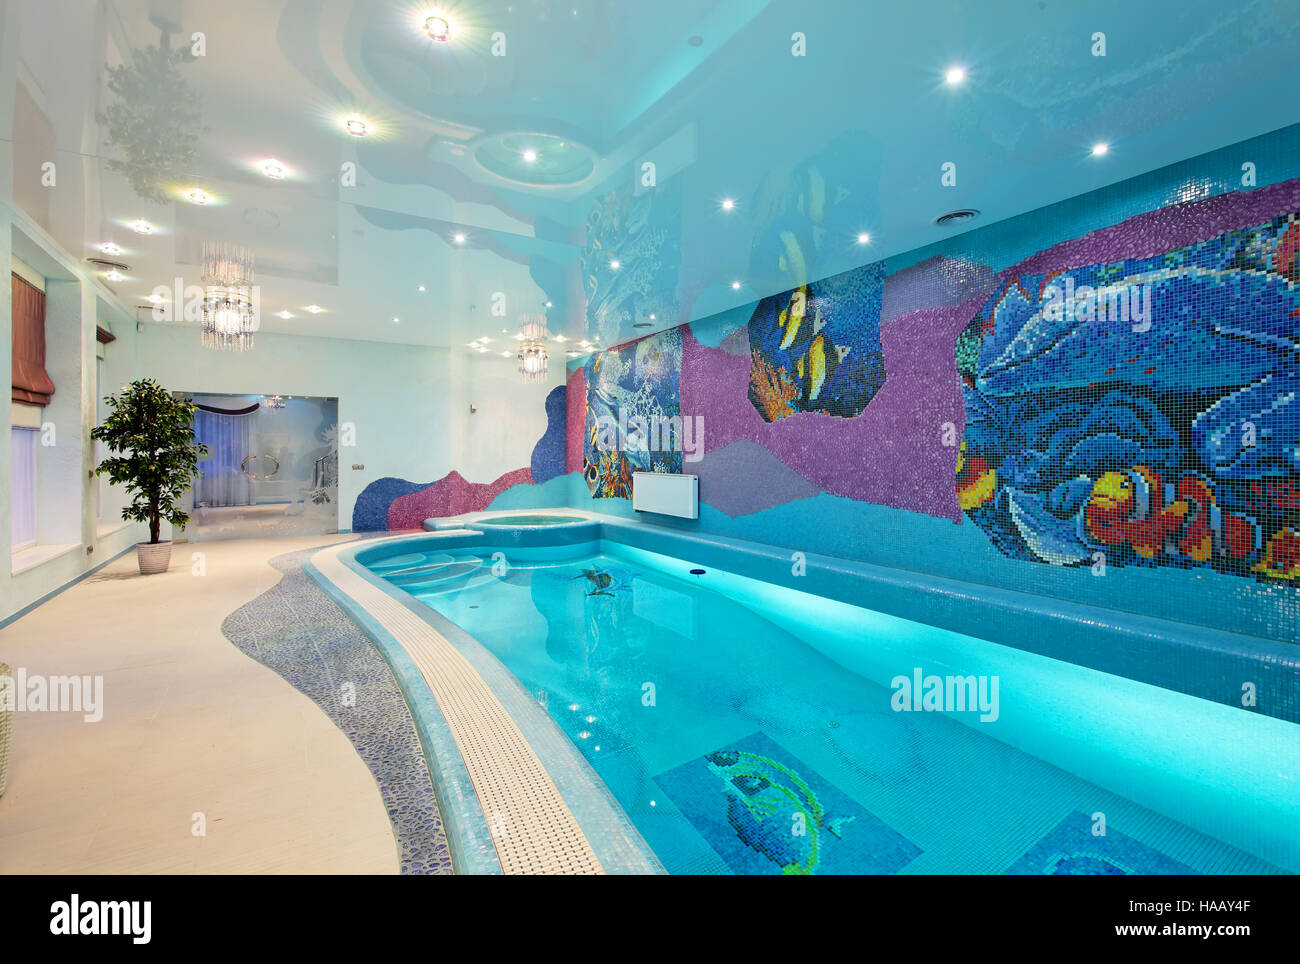 Interior design in spa zone with mosaic swimming pool and ...